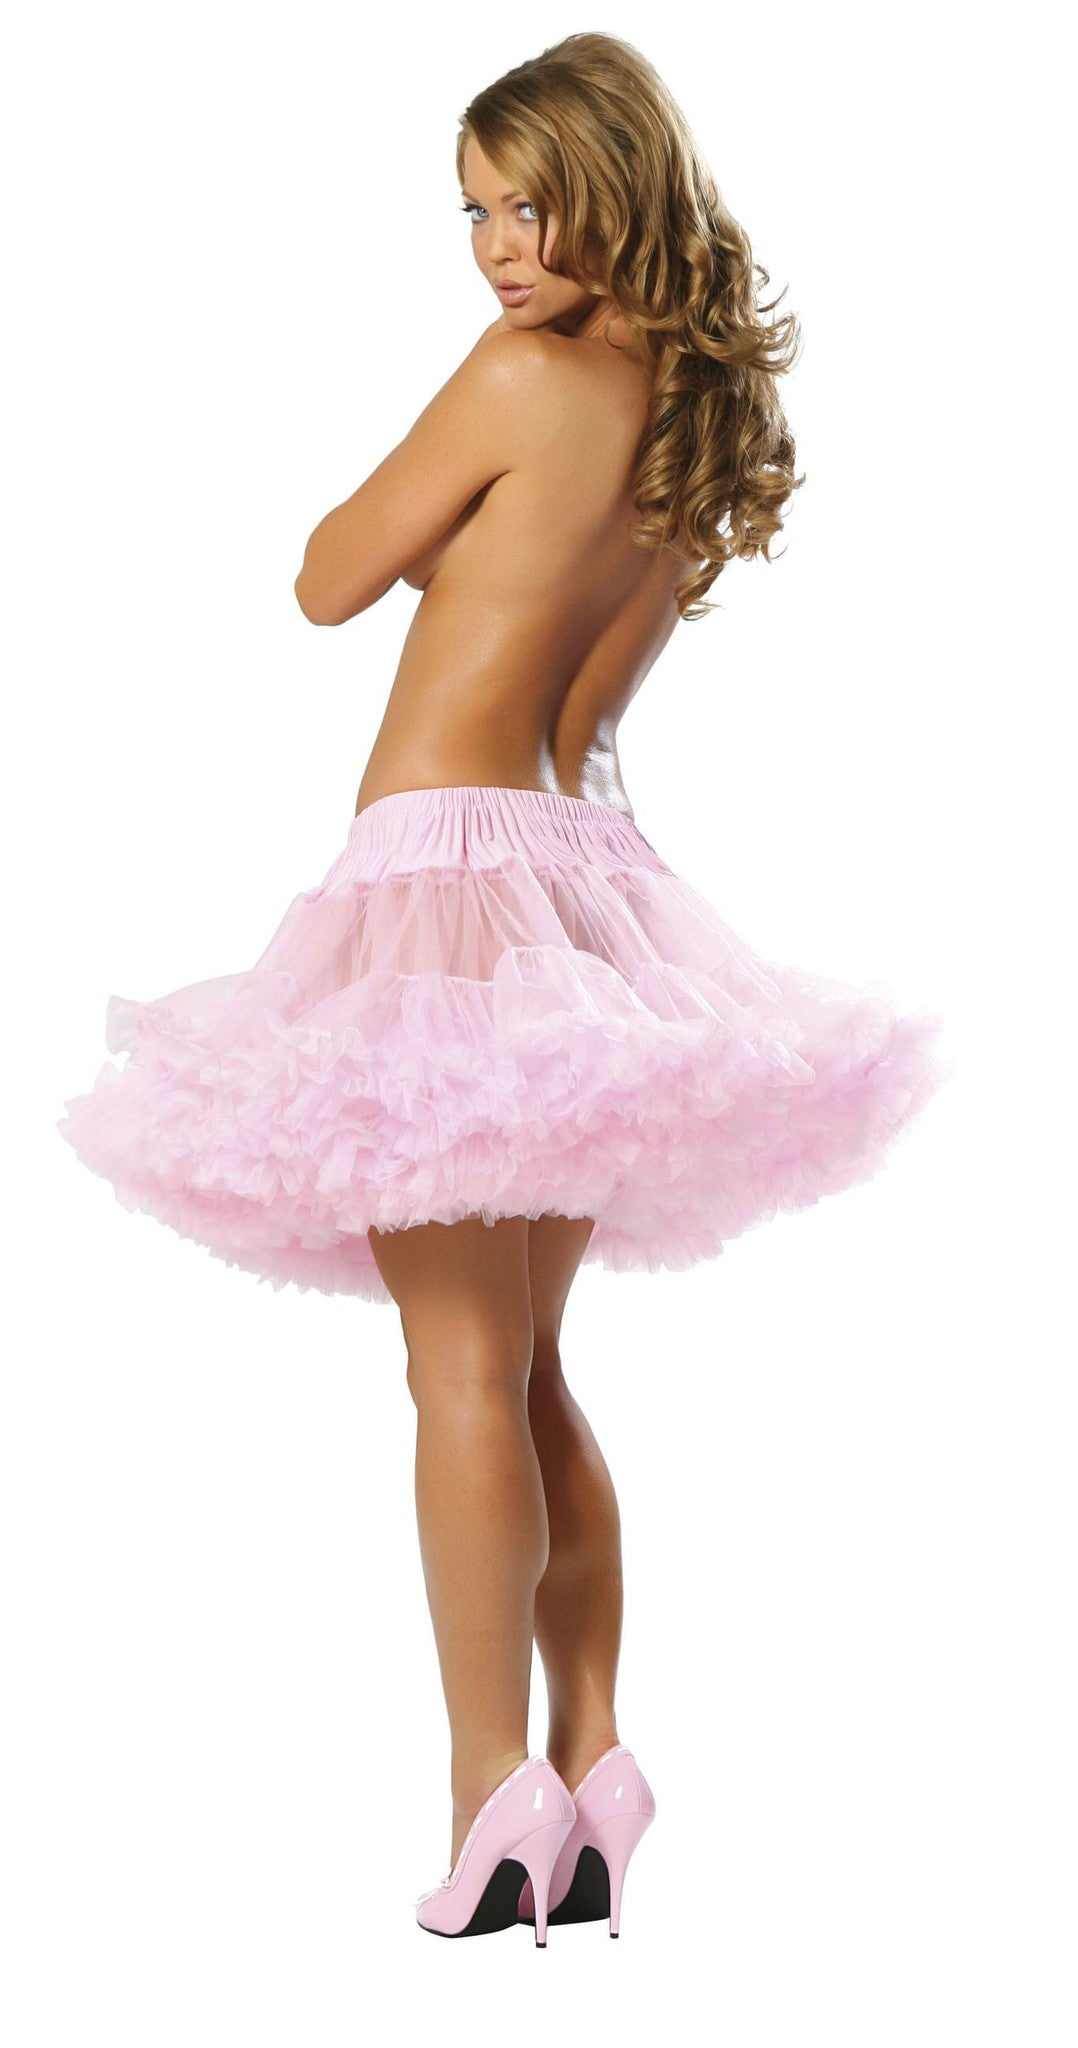 1400 - Fluffy Petticoat ${description} | Roma Costume and Roma Confidential wholesale manufacturer of Women Apparel bulk world wide wholesale and world wide drop ship services for Adult Halloween Costumes, Sexy and Elegant Lingerie, Rave Clothing, Club wear, and Christmas Costumes. Accessories, Roma Costume, Inc., Roma Costume, Roma Confidential, Wholesale clothing, drop ship, drop ship service, Wholesale Lingerie, Wholesale Adult Halloween Costumes, Rave Clothing, EDM Clothing, Festival Wear, Christmas Costumes, Clubwear, Club wear.